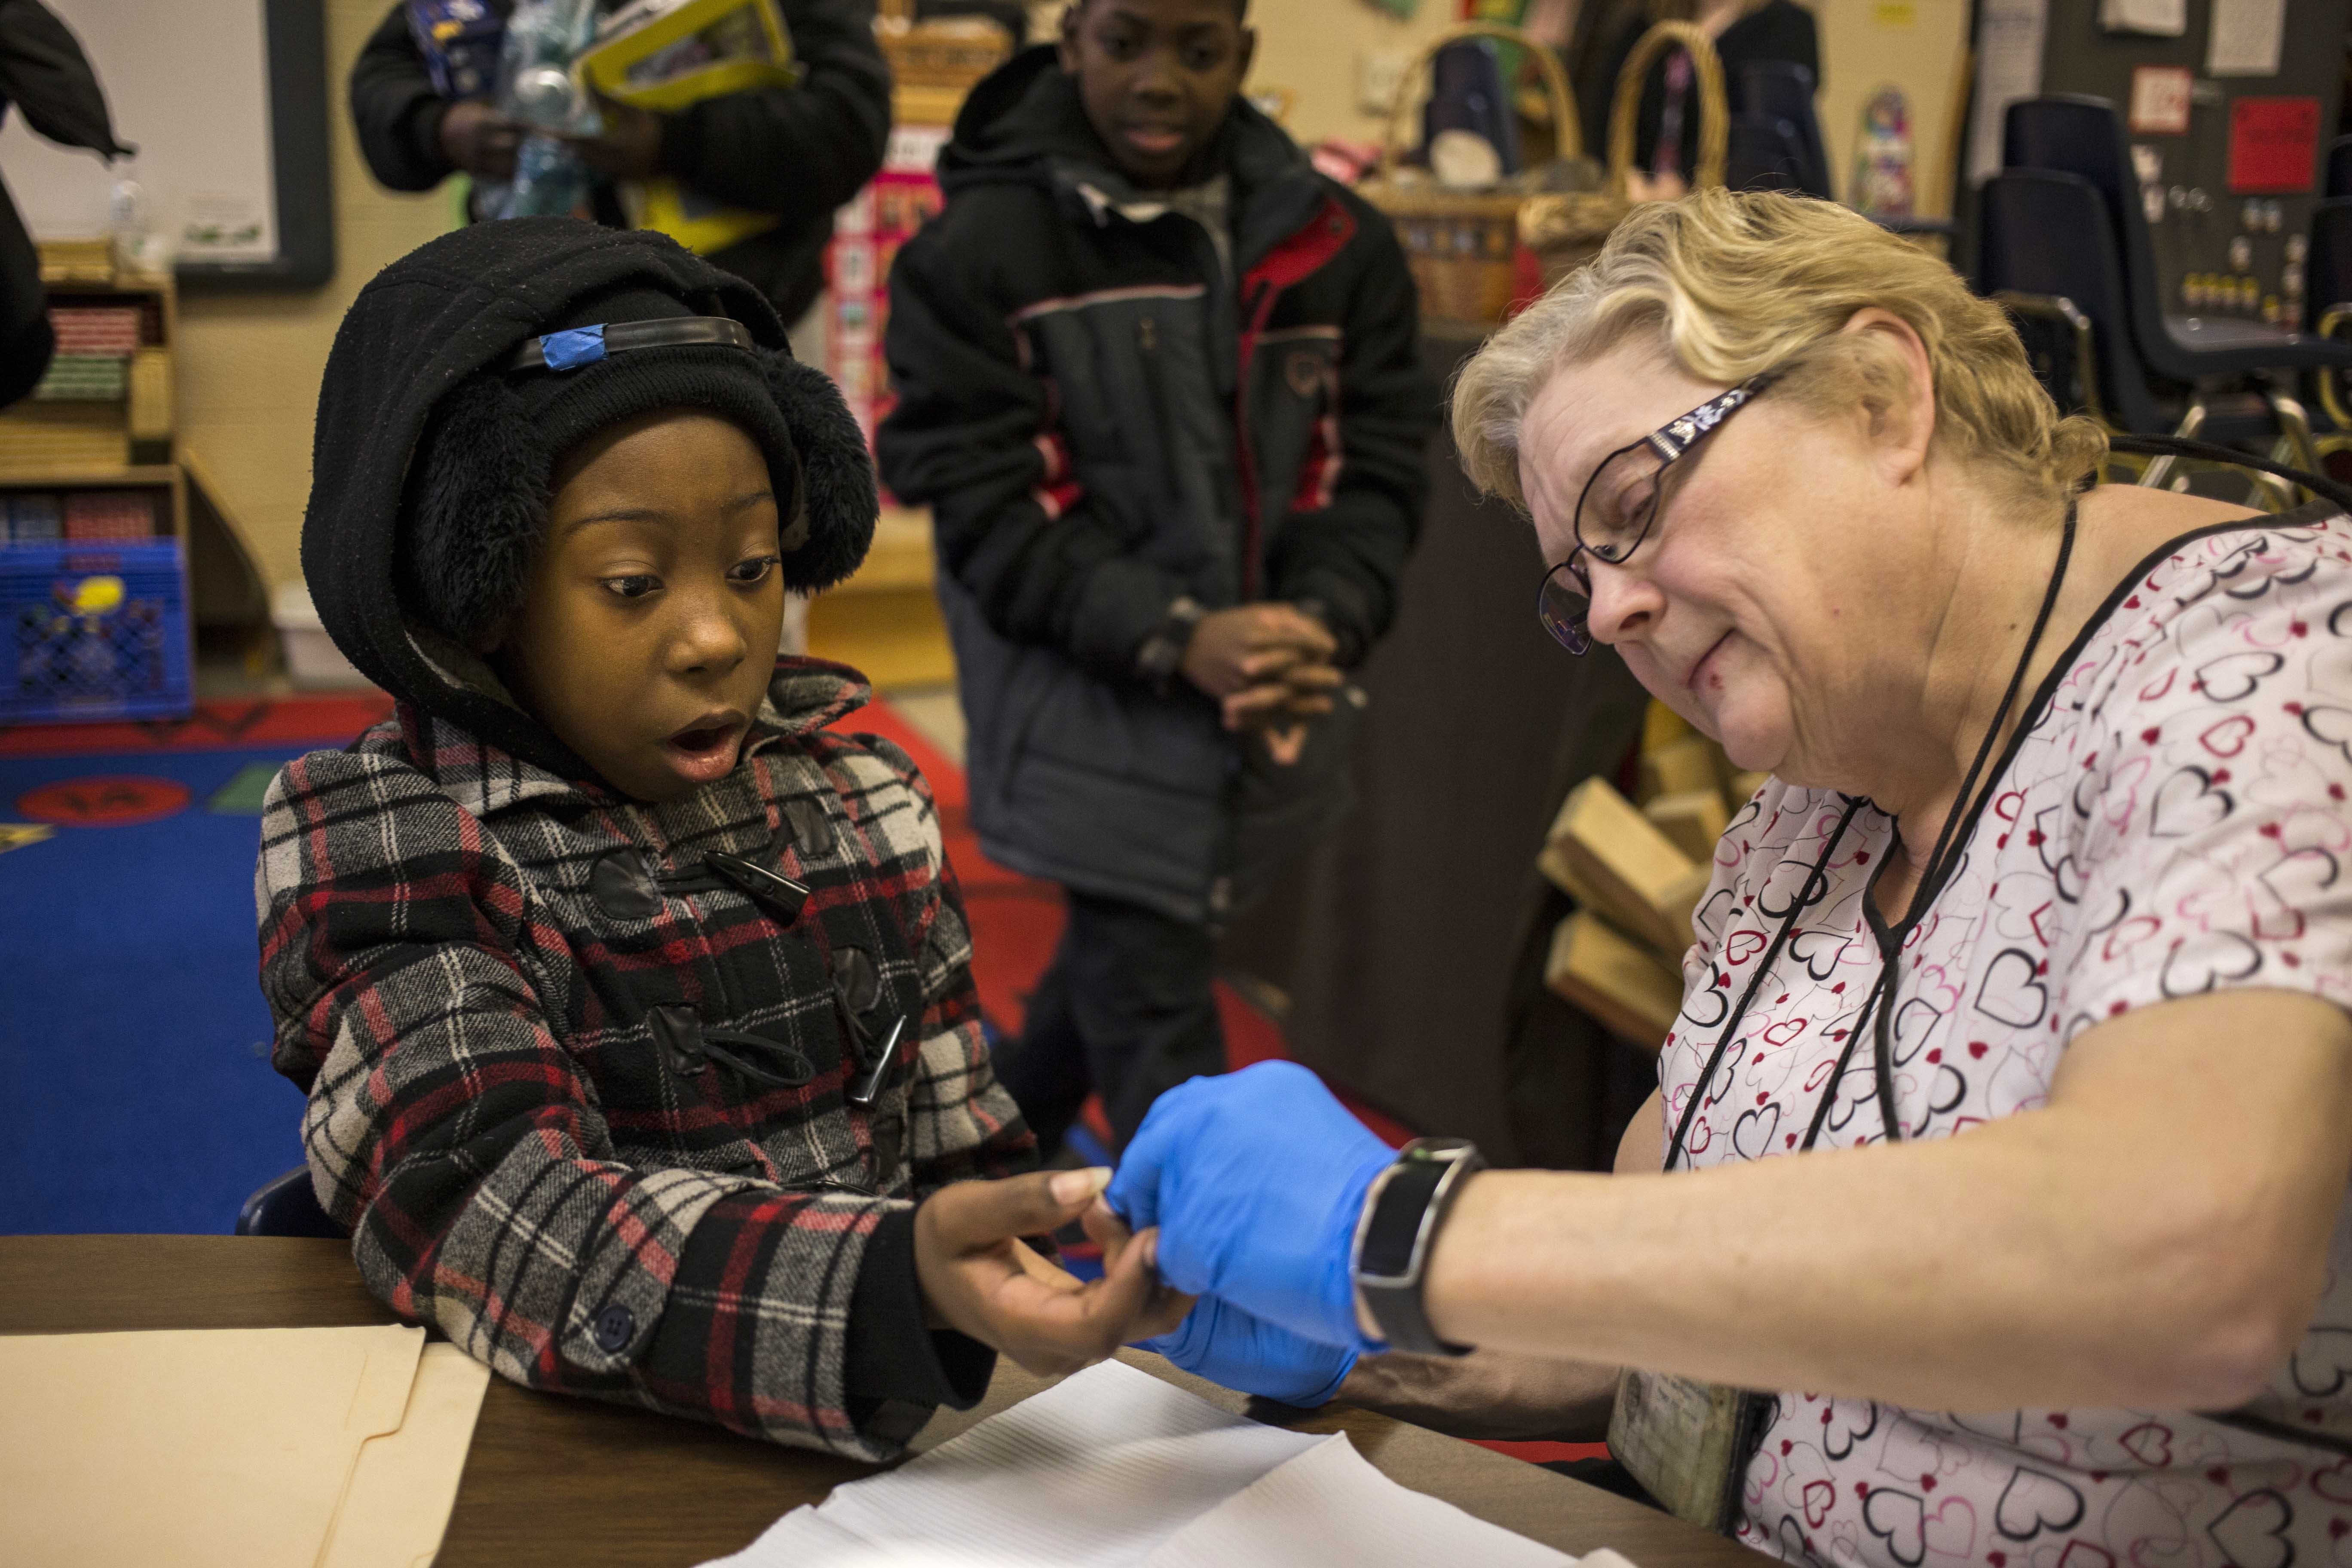 Ti'Nisha Norman, 11, get's her blood lead levels tested at Freeman Elementary School's Family Fun and Lead Testing night on January 12, 2016. (Brittany Greeson/GroundTruth)